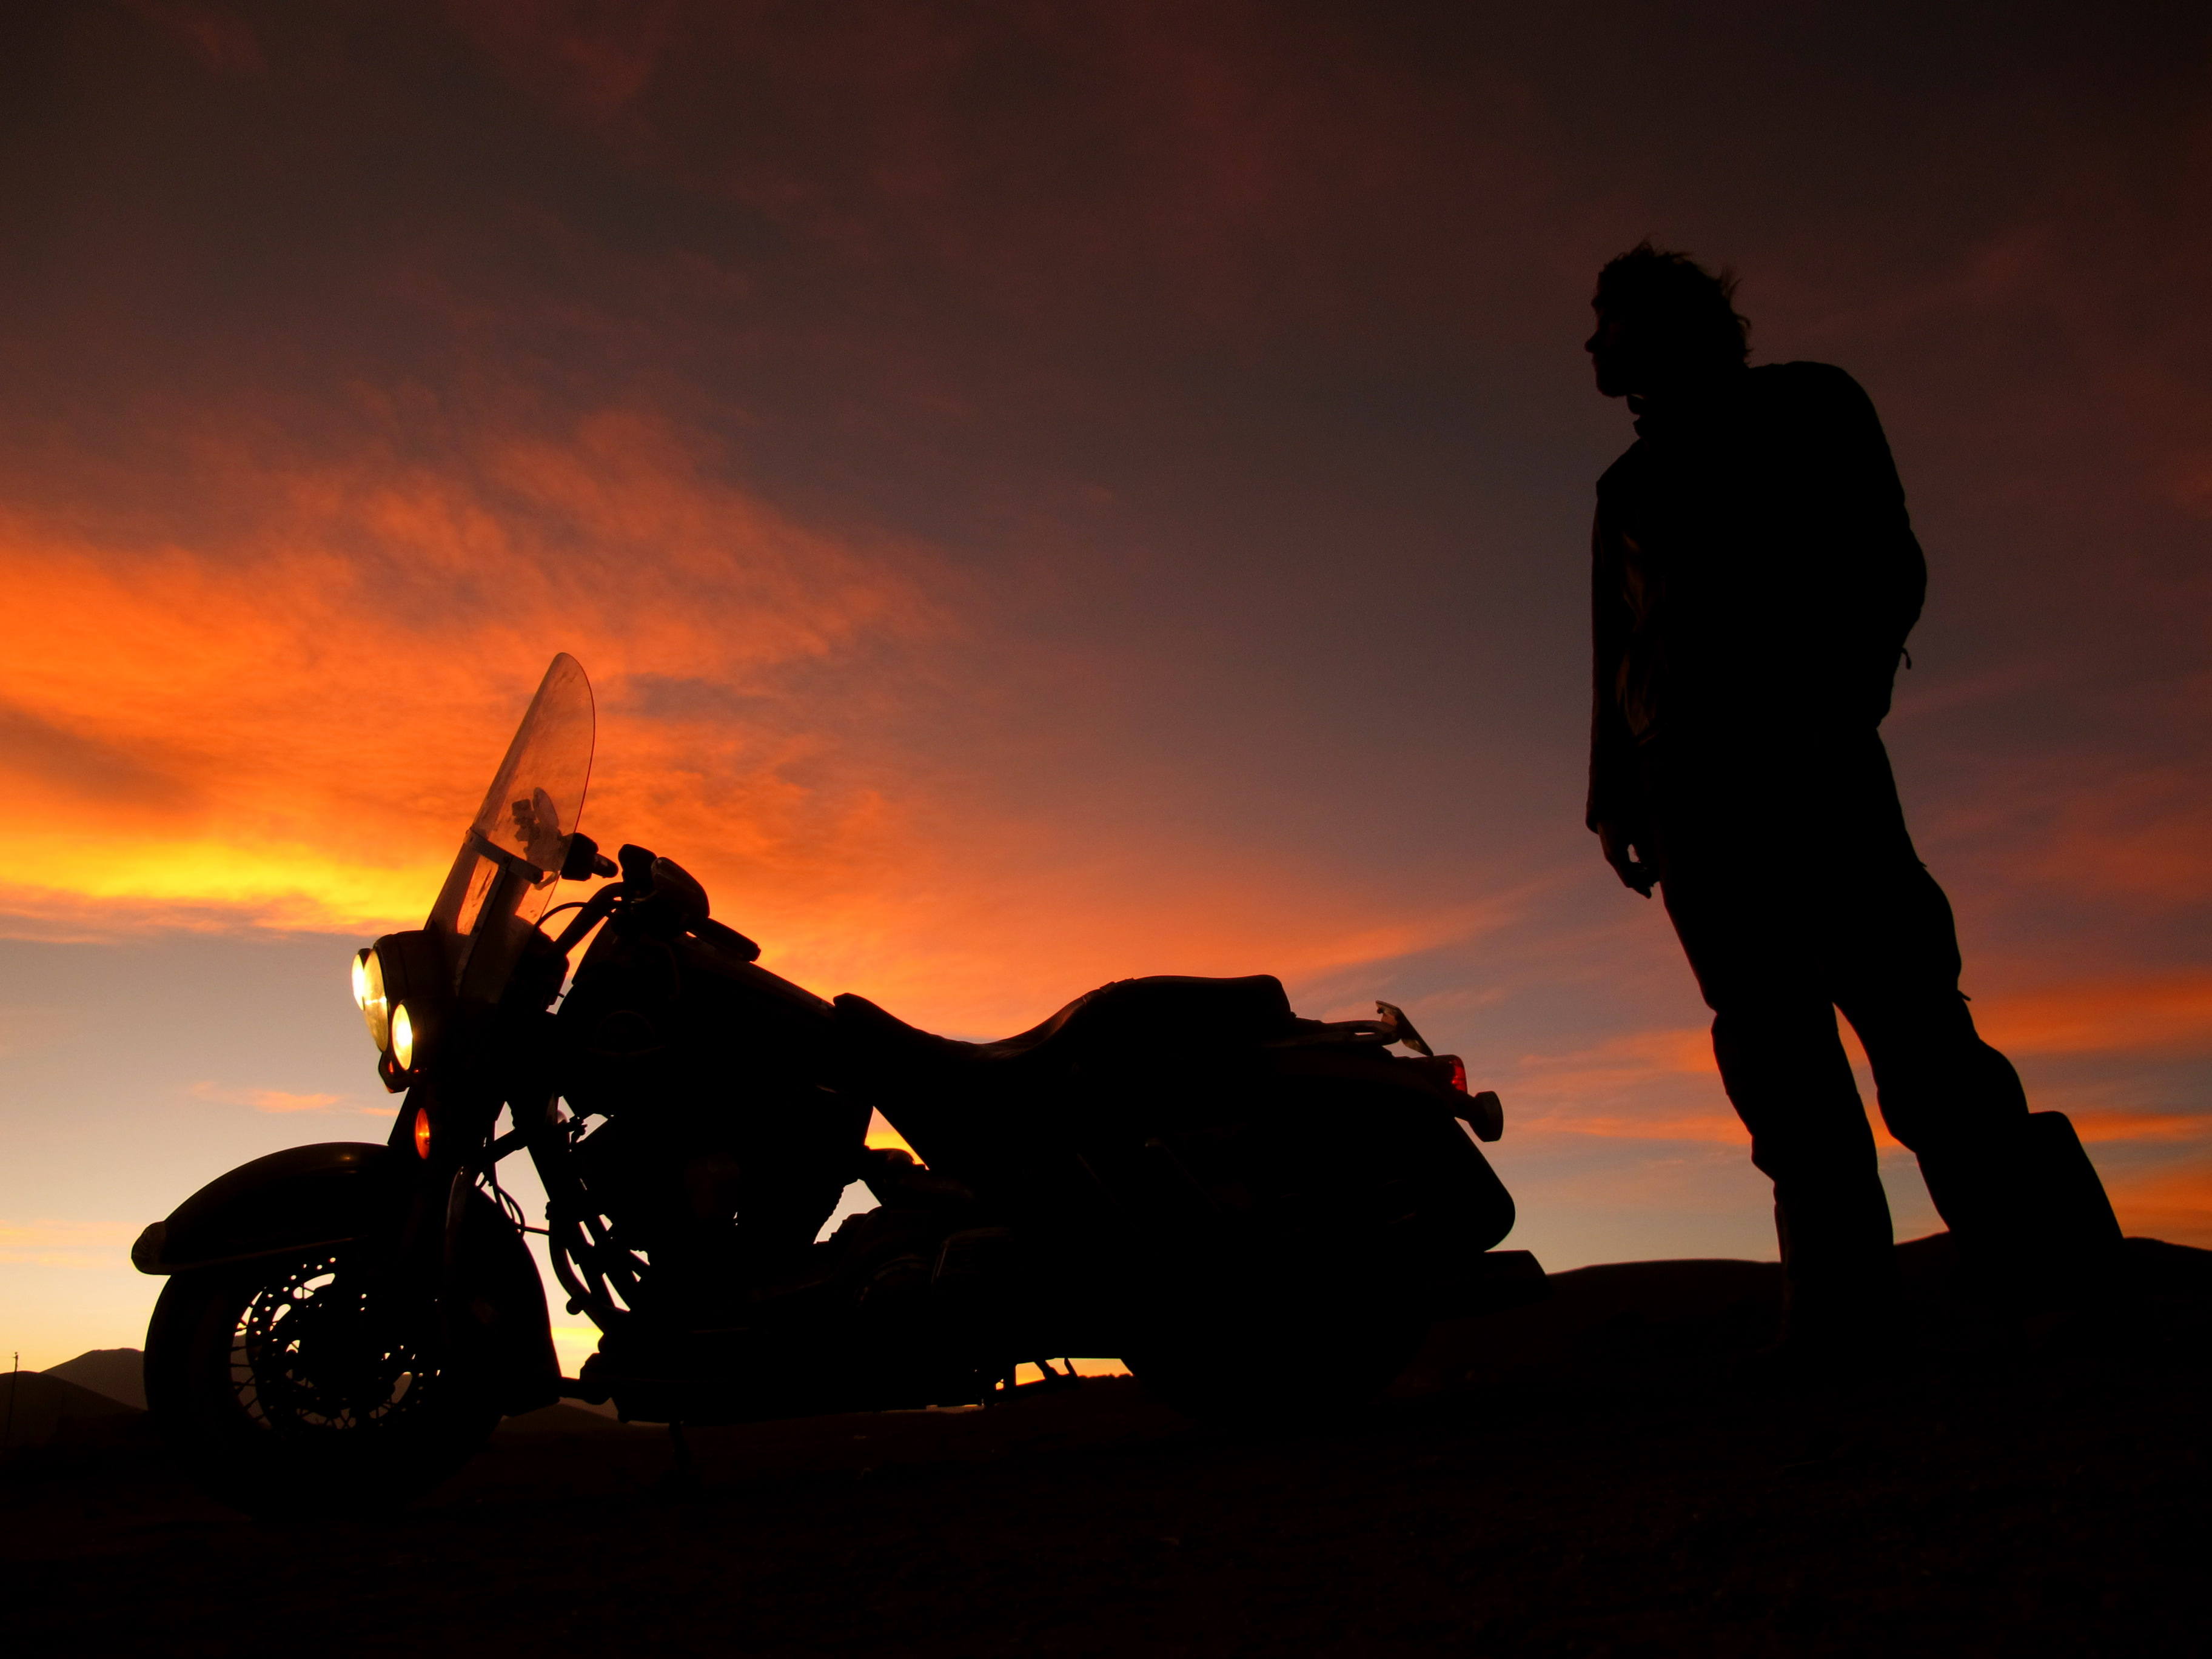 rob_harley_sunset | The Road Chose Me